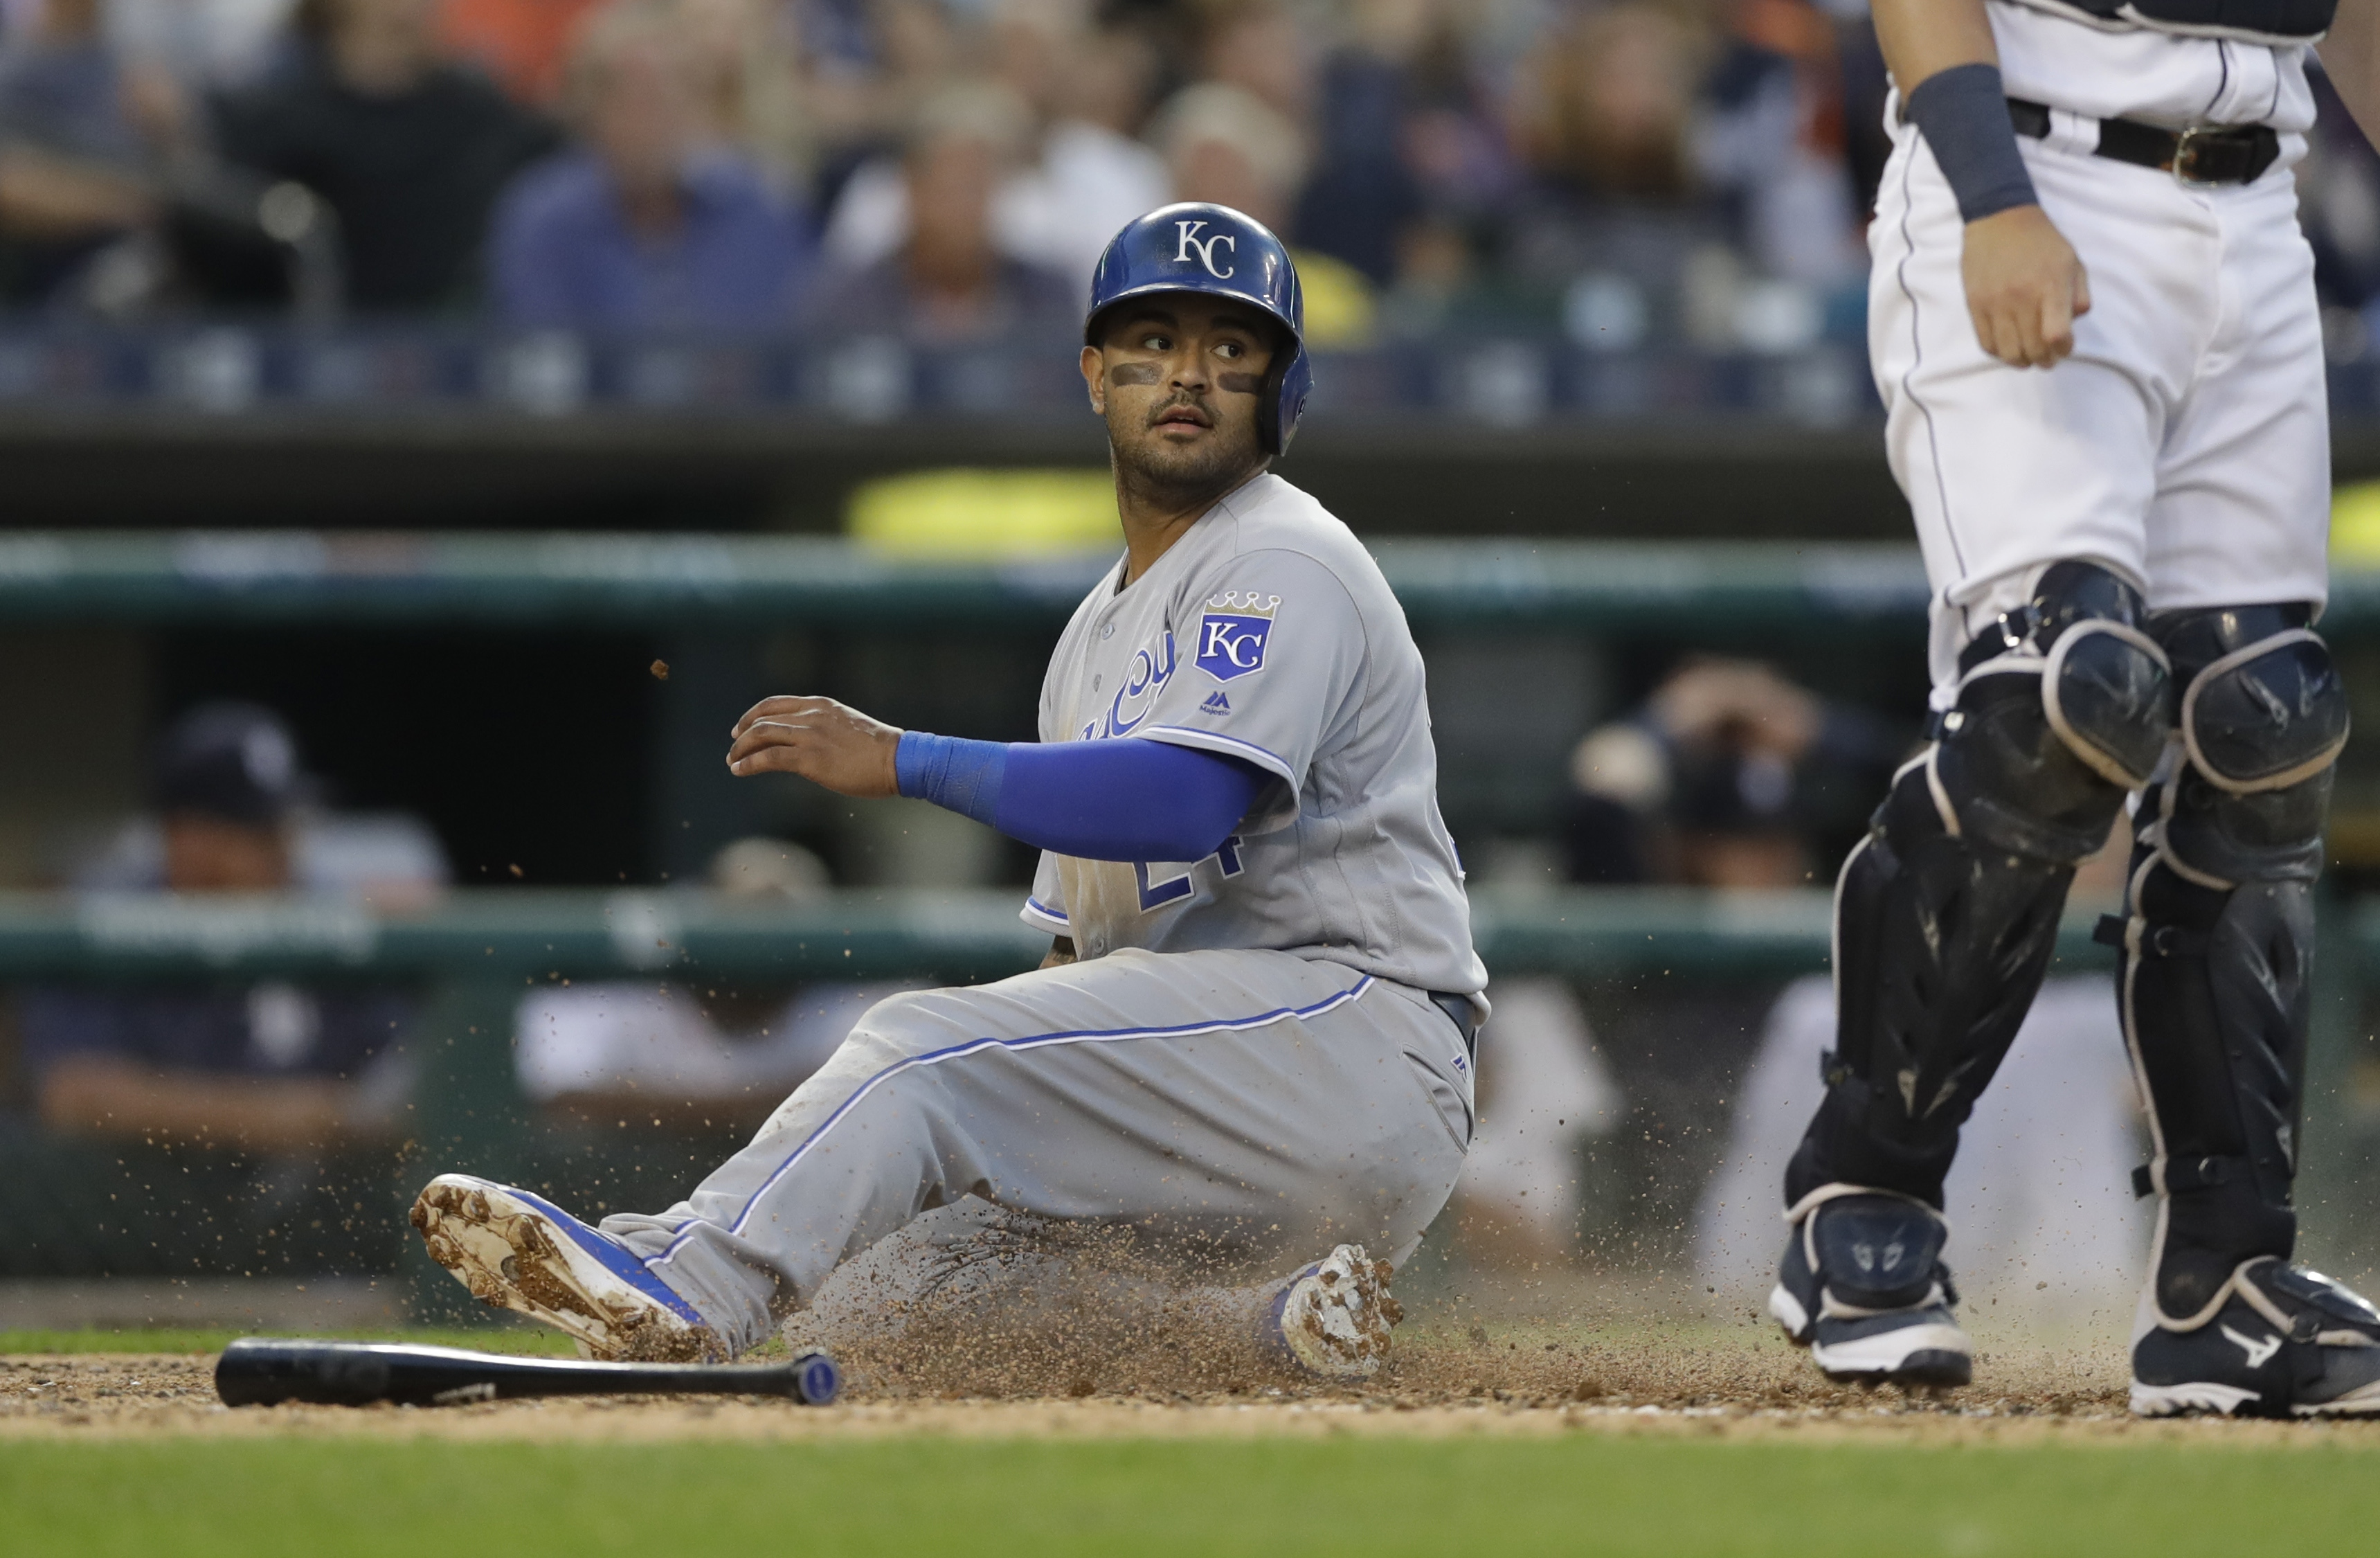 Kansas City Royals Christian Colon safely slides home from second on a single by Jarrod Dyson during the fifth inning of a baseball game against the Detroit Tigers, Saturday, July 16, 2016 in Detroit. (AP Photo/Carlos Osorio)